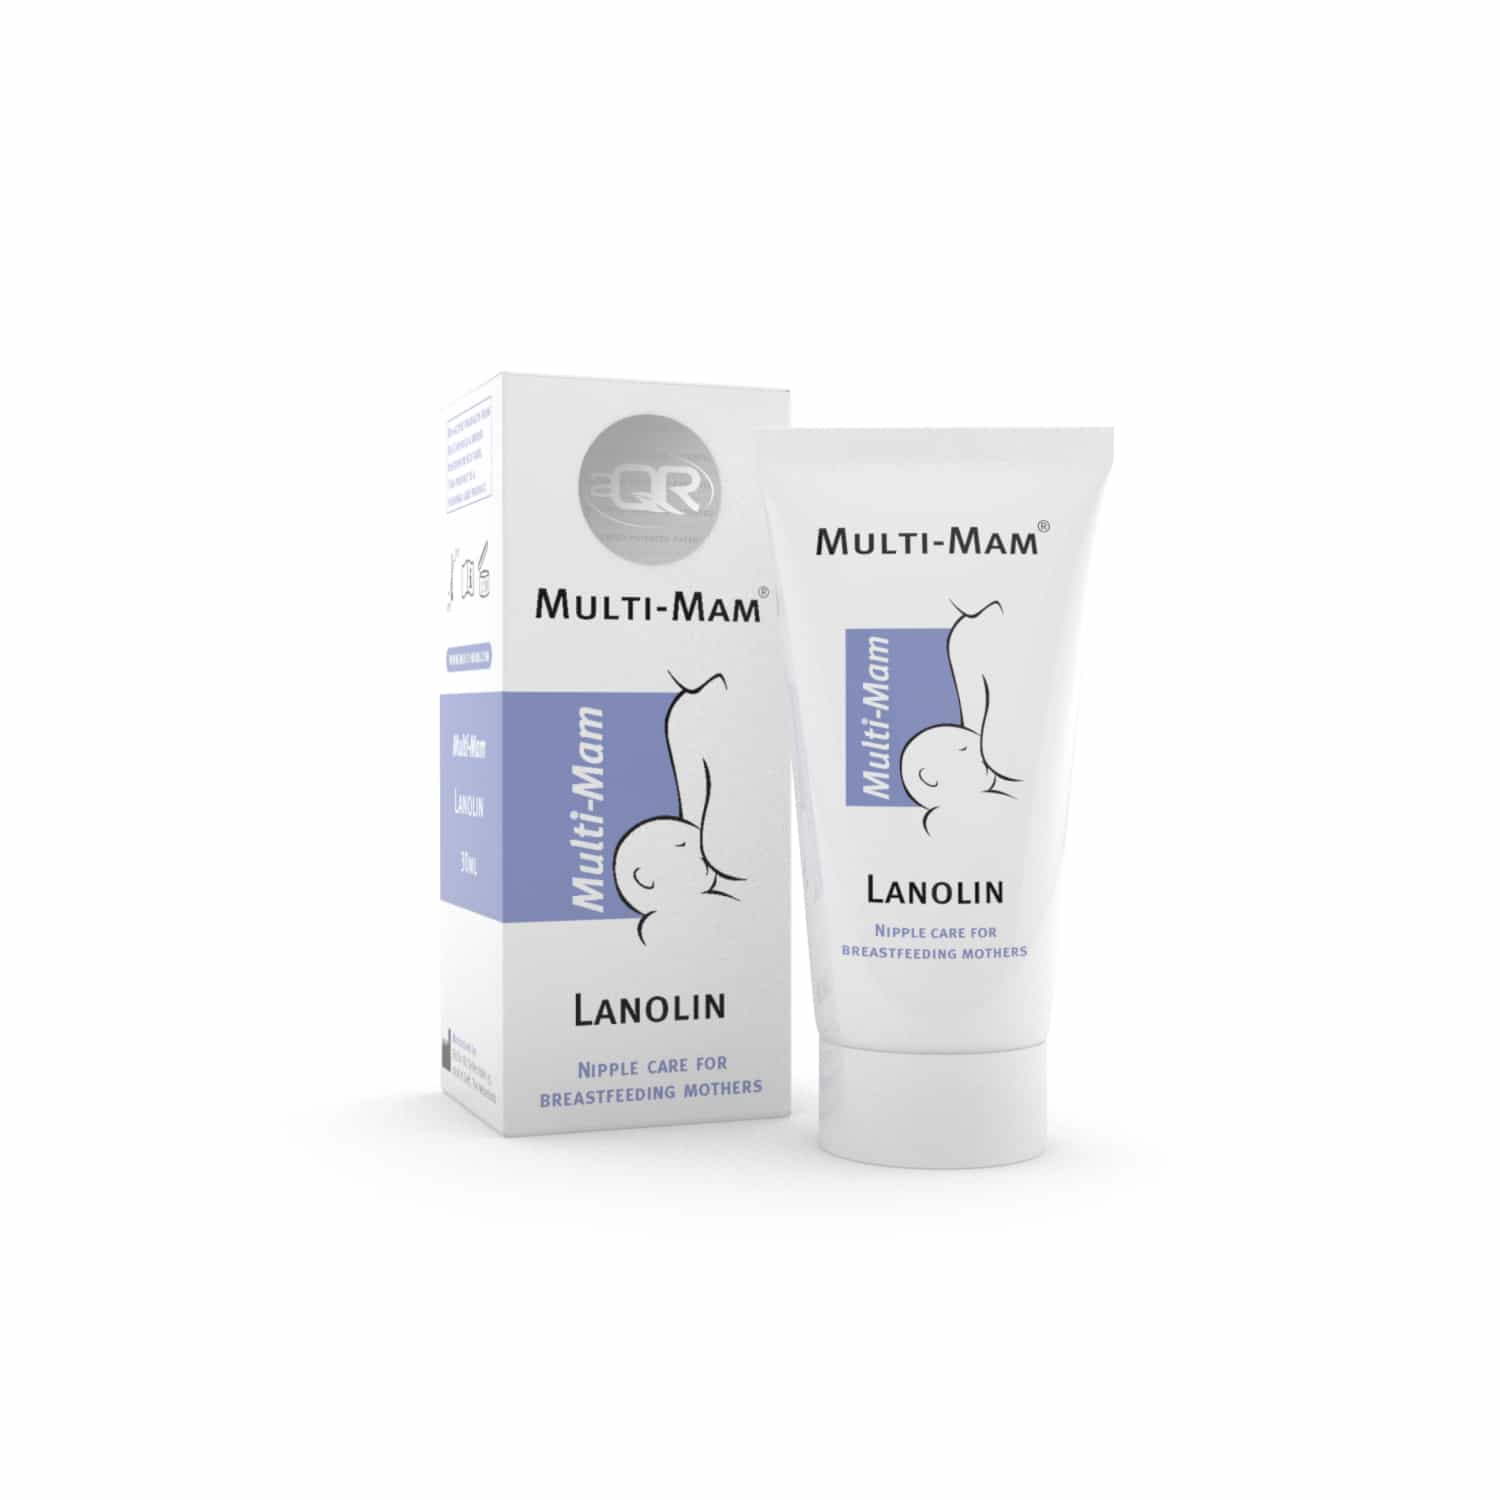 Multi-Mam Lanolin